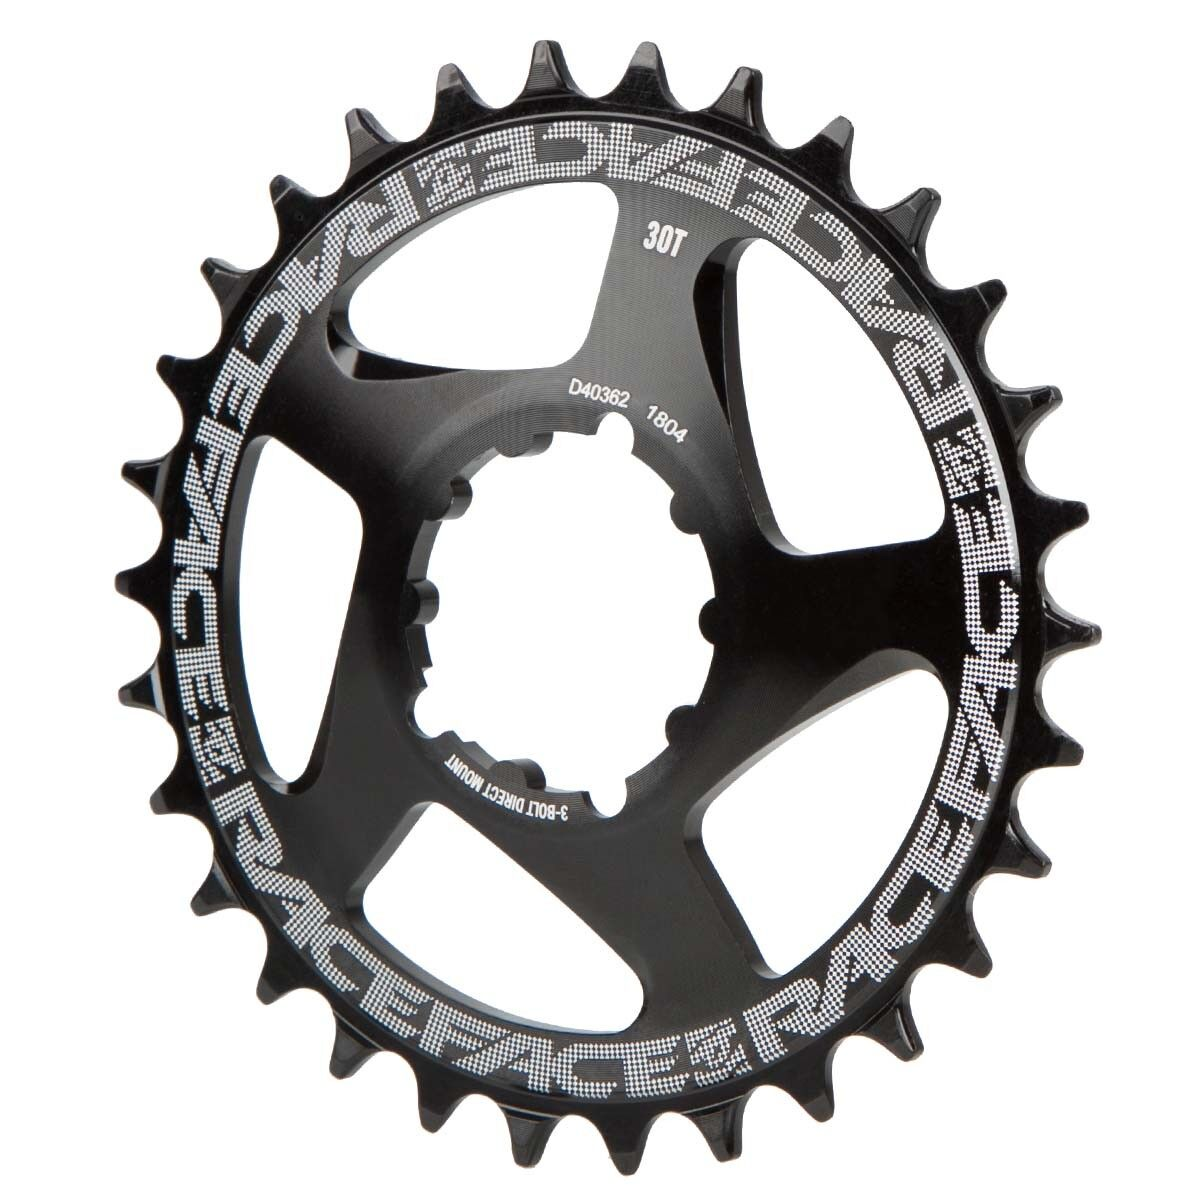 Race Face MTB-Kettenblatt  Schwarz, Direct Direct Direct Mount, 3-Bolt, Cinch, für 10 11 12-Fa 2fdc61